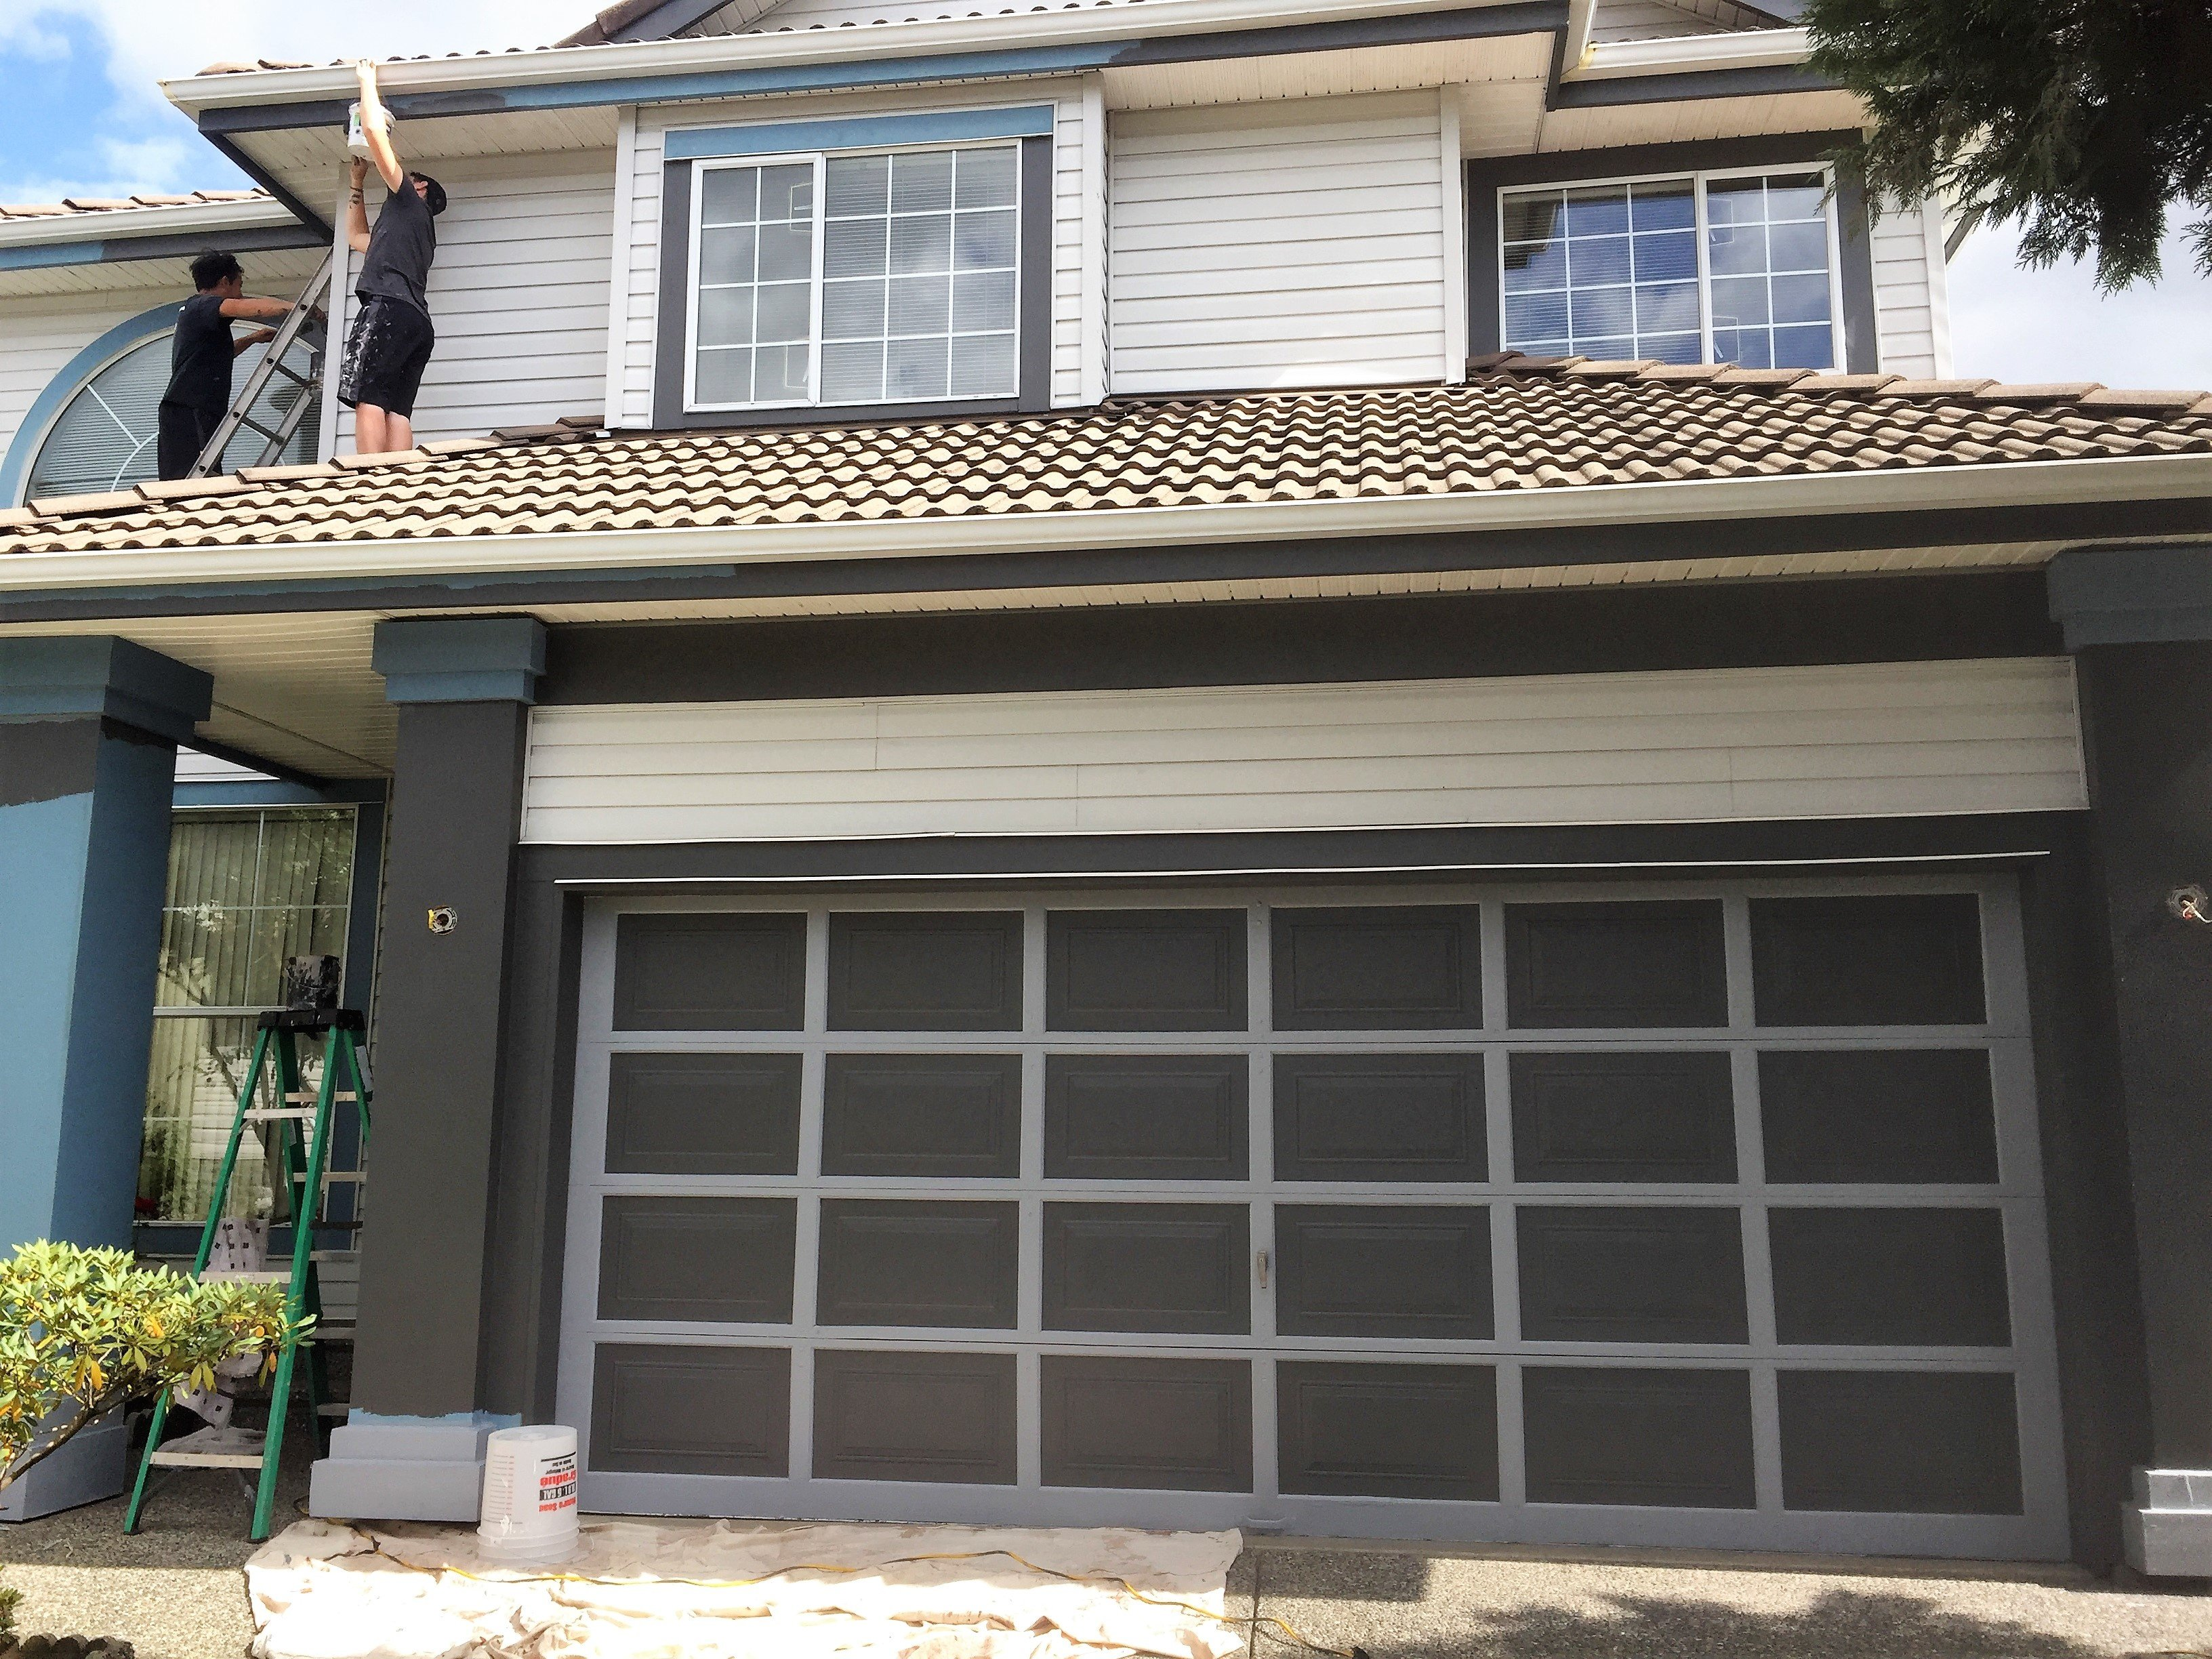 After garage door has been painted.